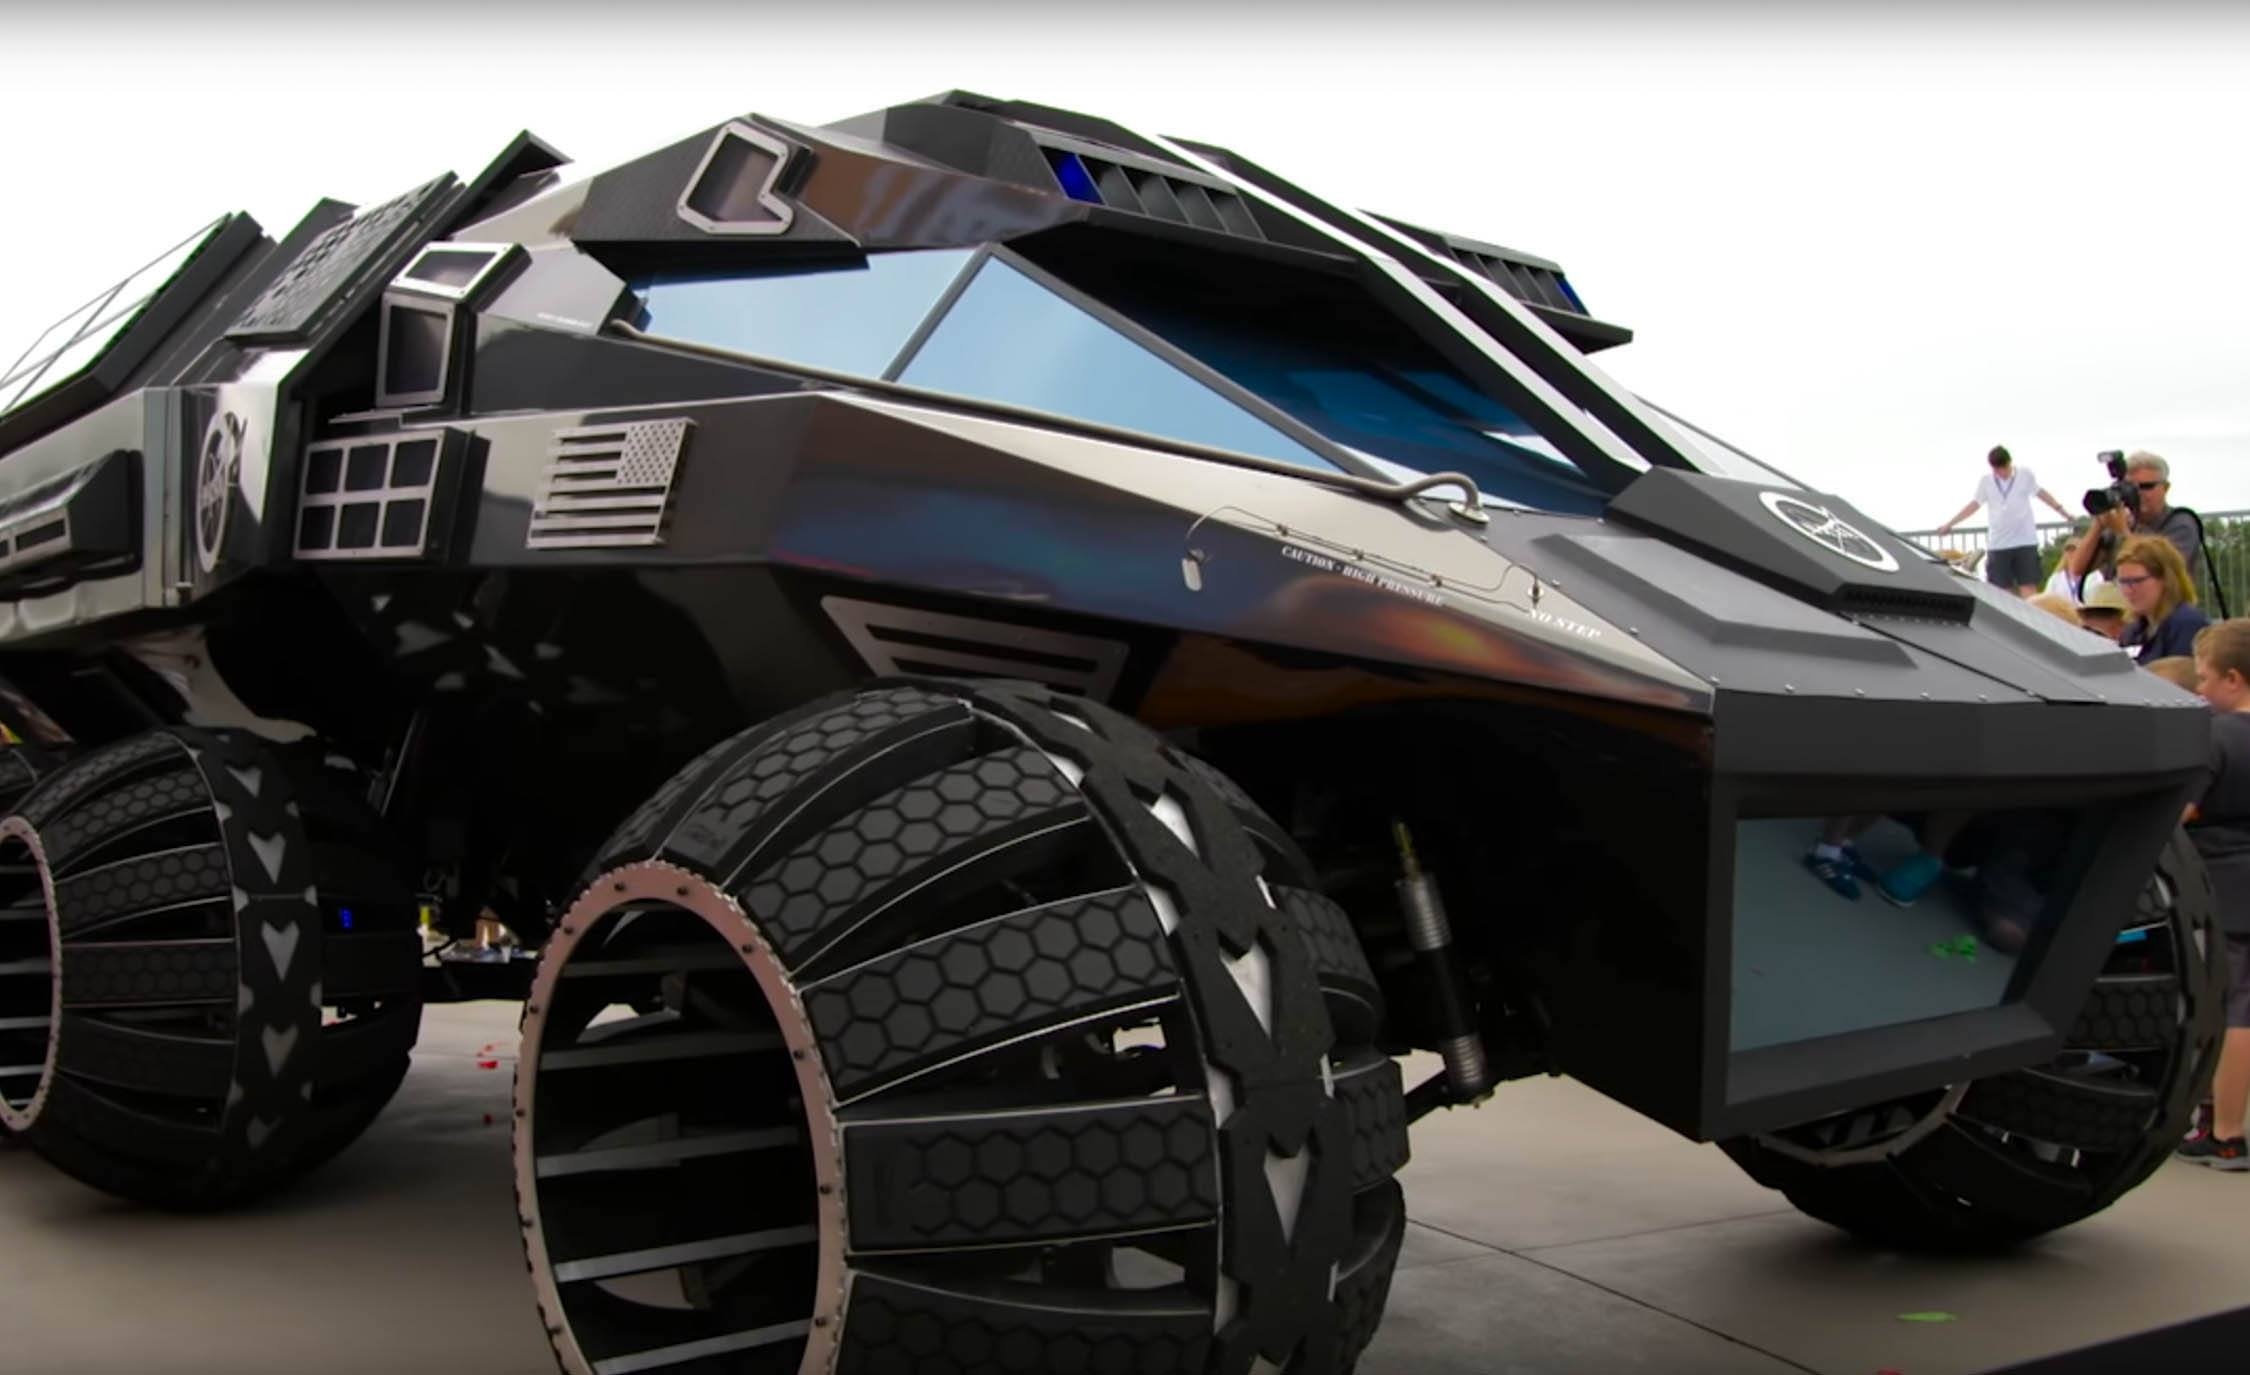 NASA Unveils Visionary Mars Rover Which Could Be Future Of Transport on Red Planet